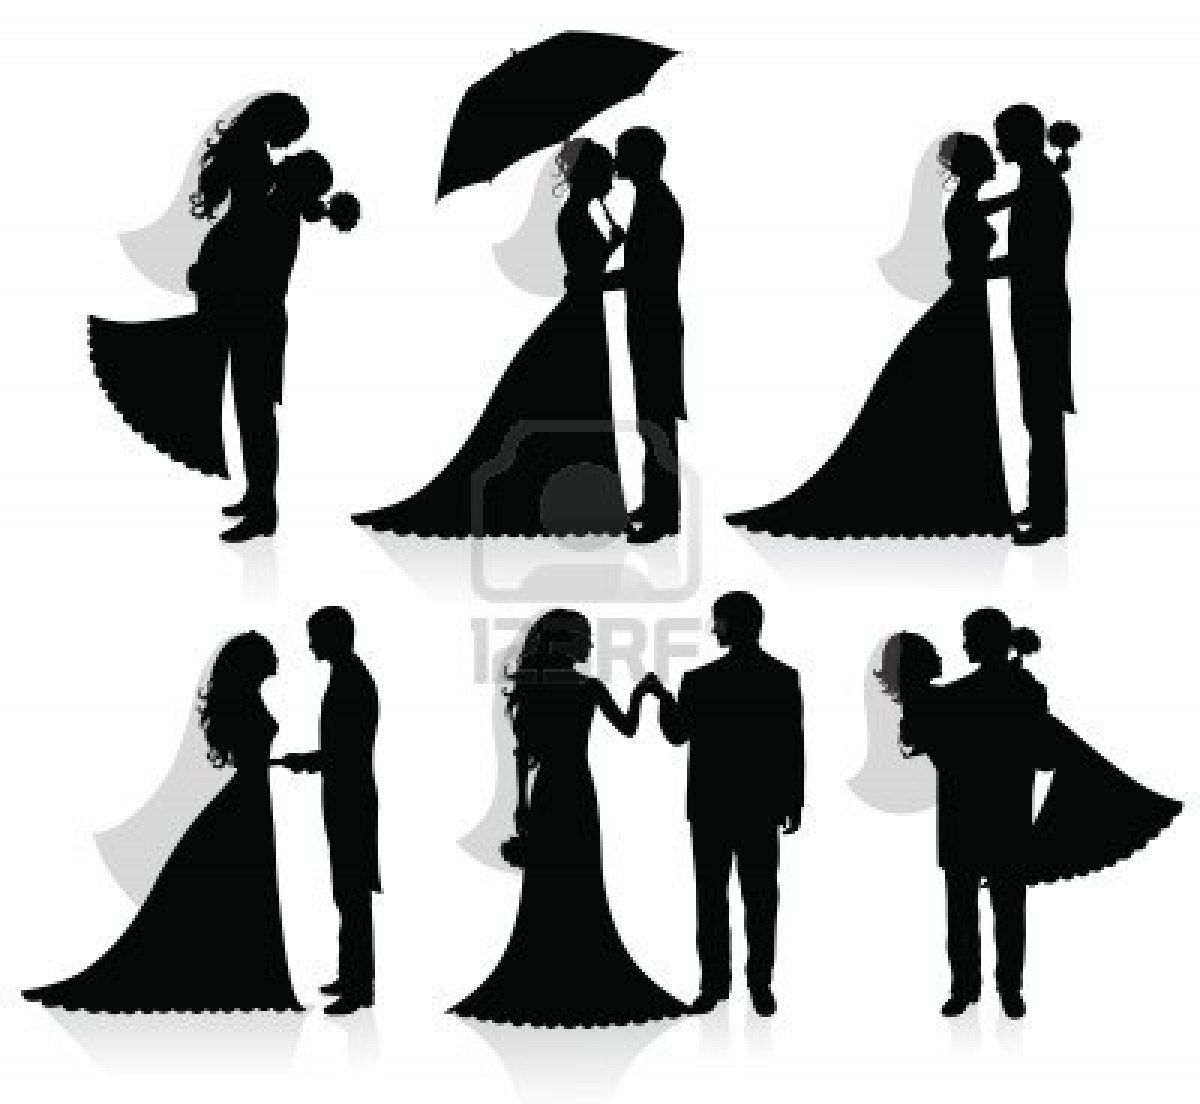 Set Of Vector Silhouettes Of A Groom And A Bride Wedding Silhouette Bride And Groom Silhouette Couple Silhouette